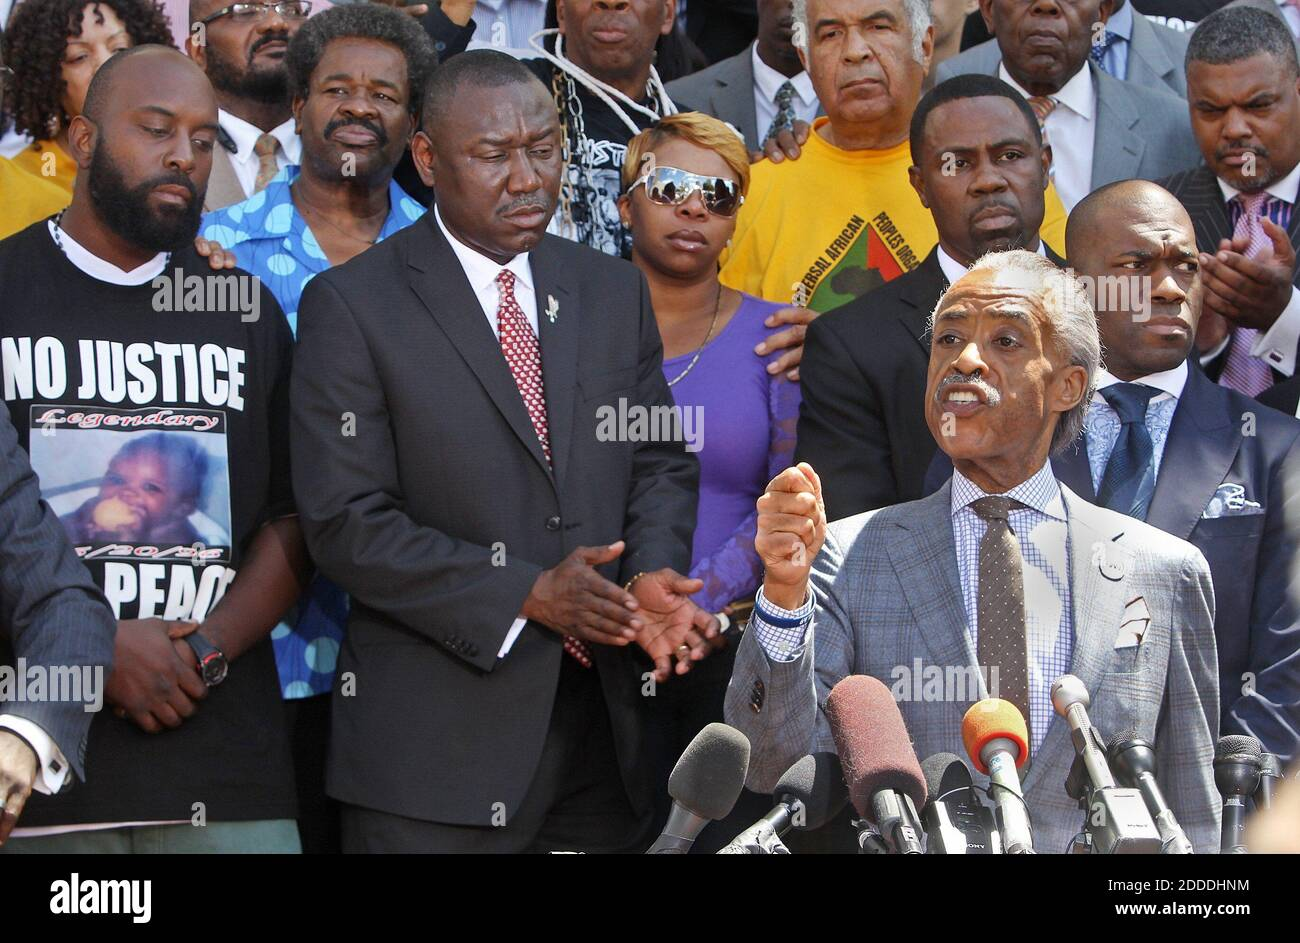 NO FILM, NO VIDEO, NO TV, NO DOCUMENTARY - Rev. Al Sharpton addresses the media at a press conference about the shooting of Michael Brown on the steps of the Old Courthouse in St. Louis, Mo., on Tuesday, August 12, 2014. Behind Sharpton, from left, is Michael Brown Sr., attorney Benjamin Crump, and Lesley McSpadden, Brown's mother. Photo by J.B. Forbes/St. Louis Post-Dispatch/MCT/ABACAPRESS.COM Stock Photo